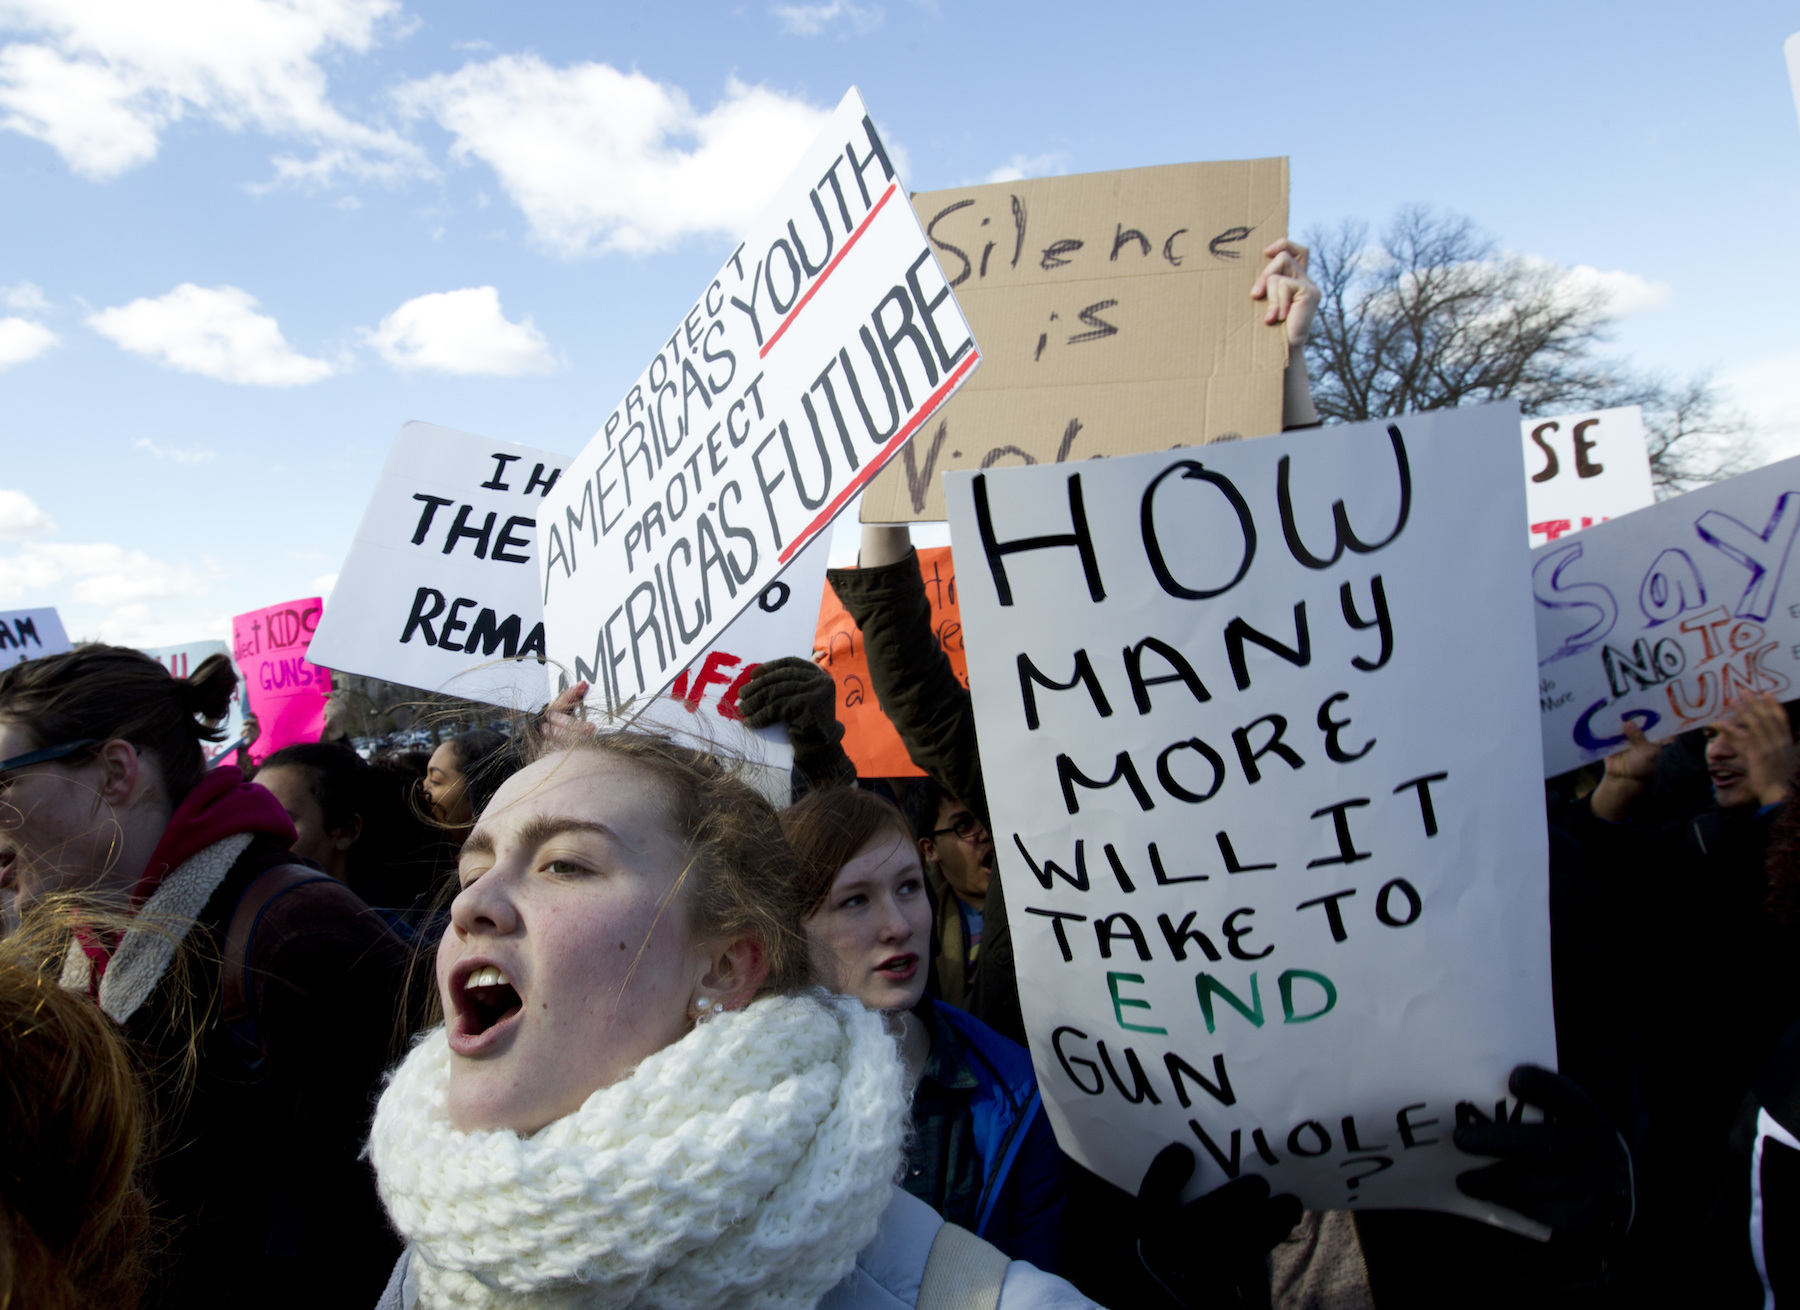 "<div class=""meta image-caption""><div class=""origin-logo origin-image ap""><span>AP</span></div><span class=""caption-text"">Students hold up their signs during a rally asking for gun control outside of the U.S. Capitol building, in Wednesday, March 14, 2018, in Washington. (AP Photo/Jose Luis Magana)</span></div>"